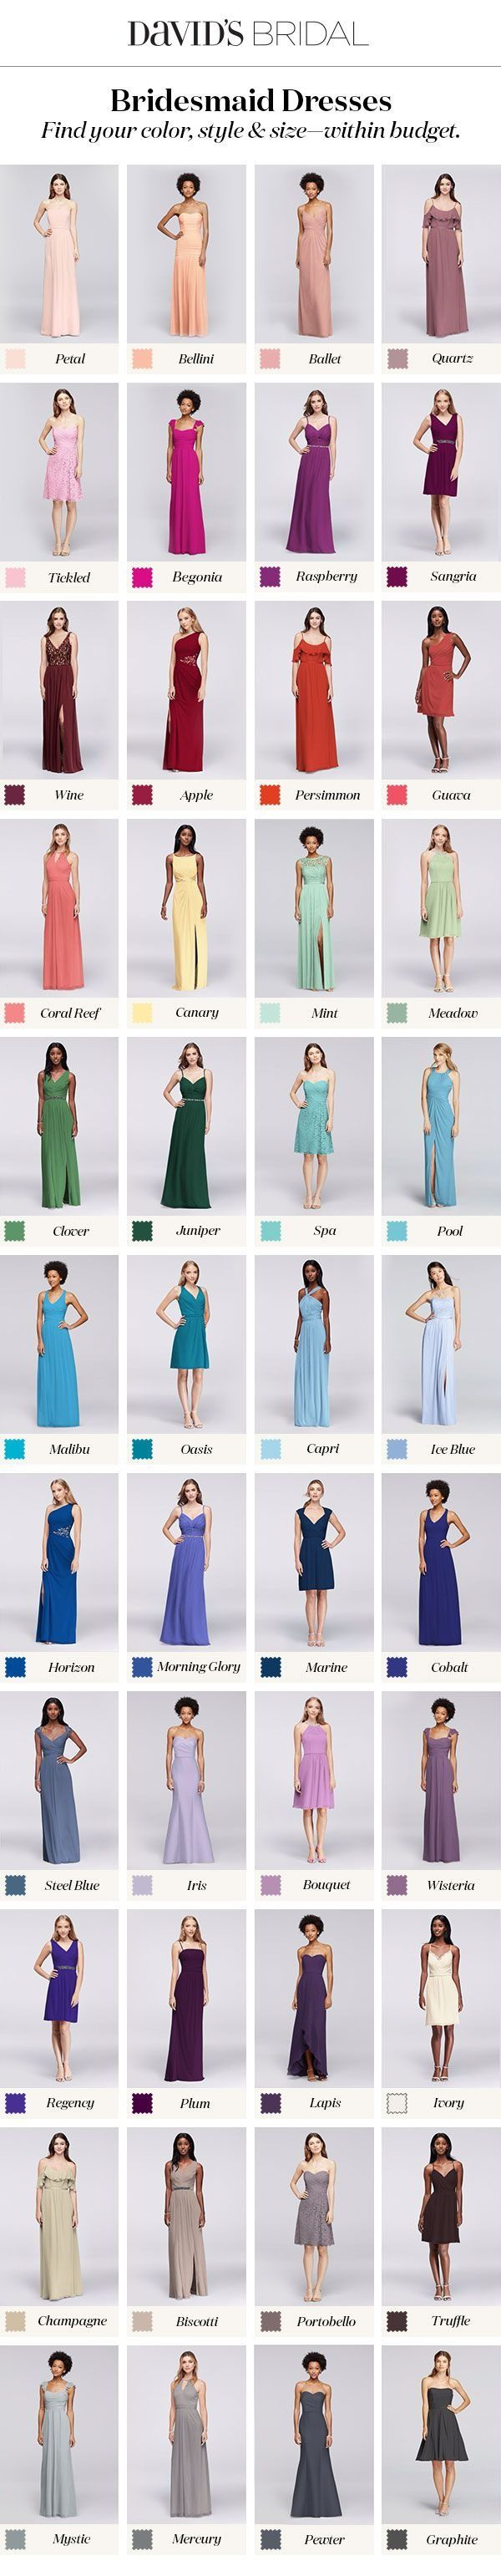 Bridesmaid dresses in your color with styles to fit every friend & every budget. Find the perfect bridal party assortment at David's Bridal